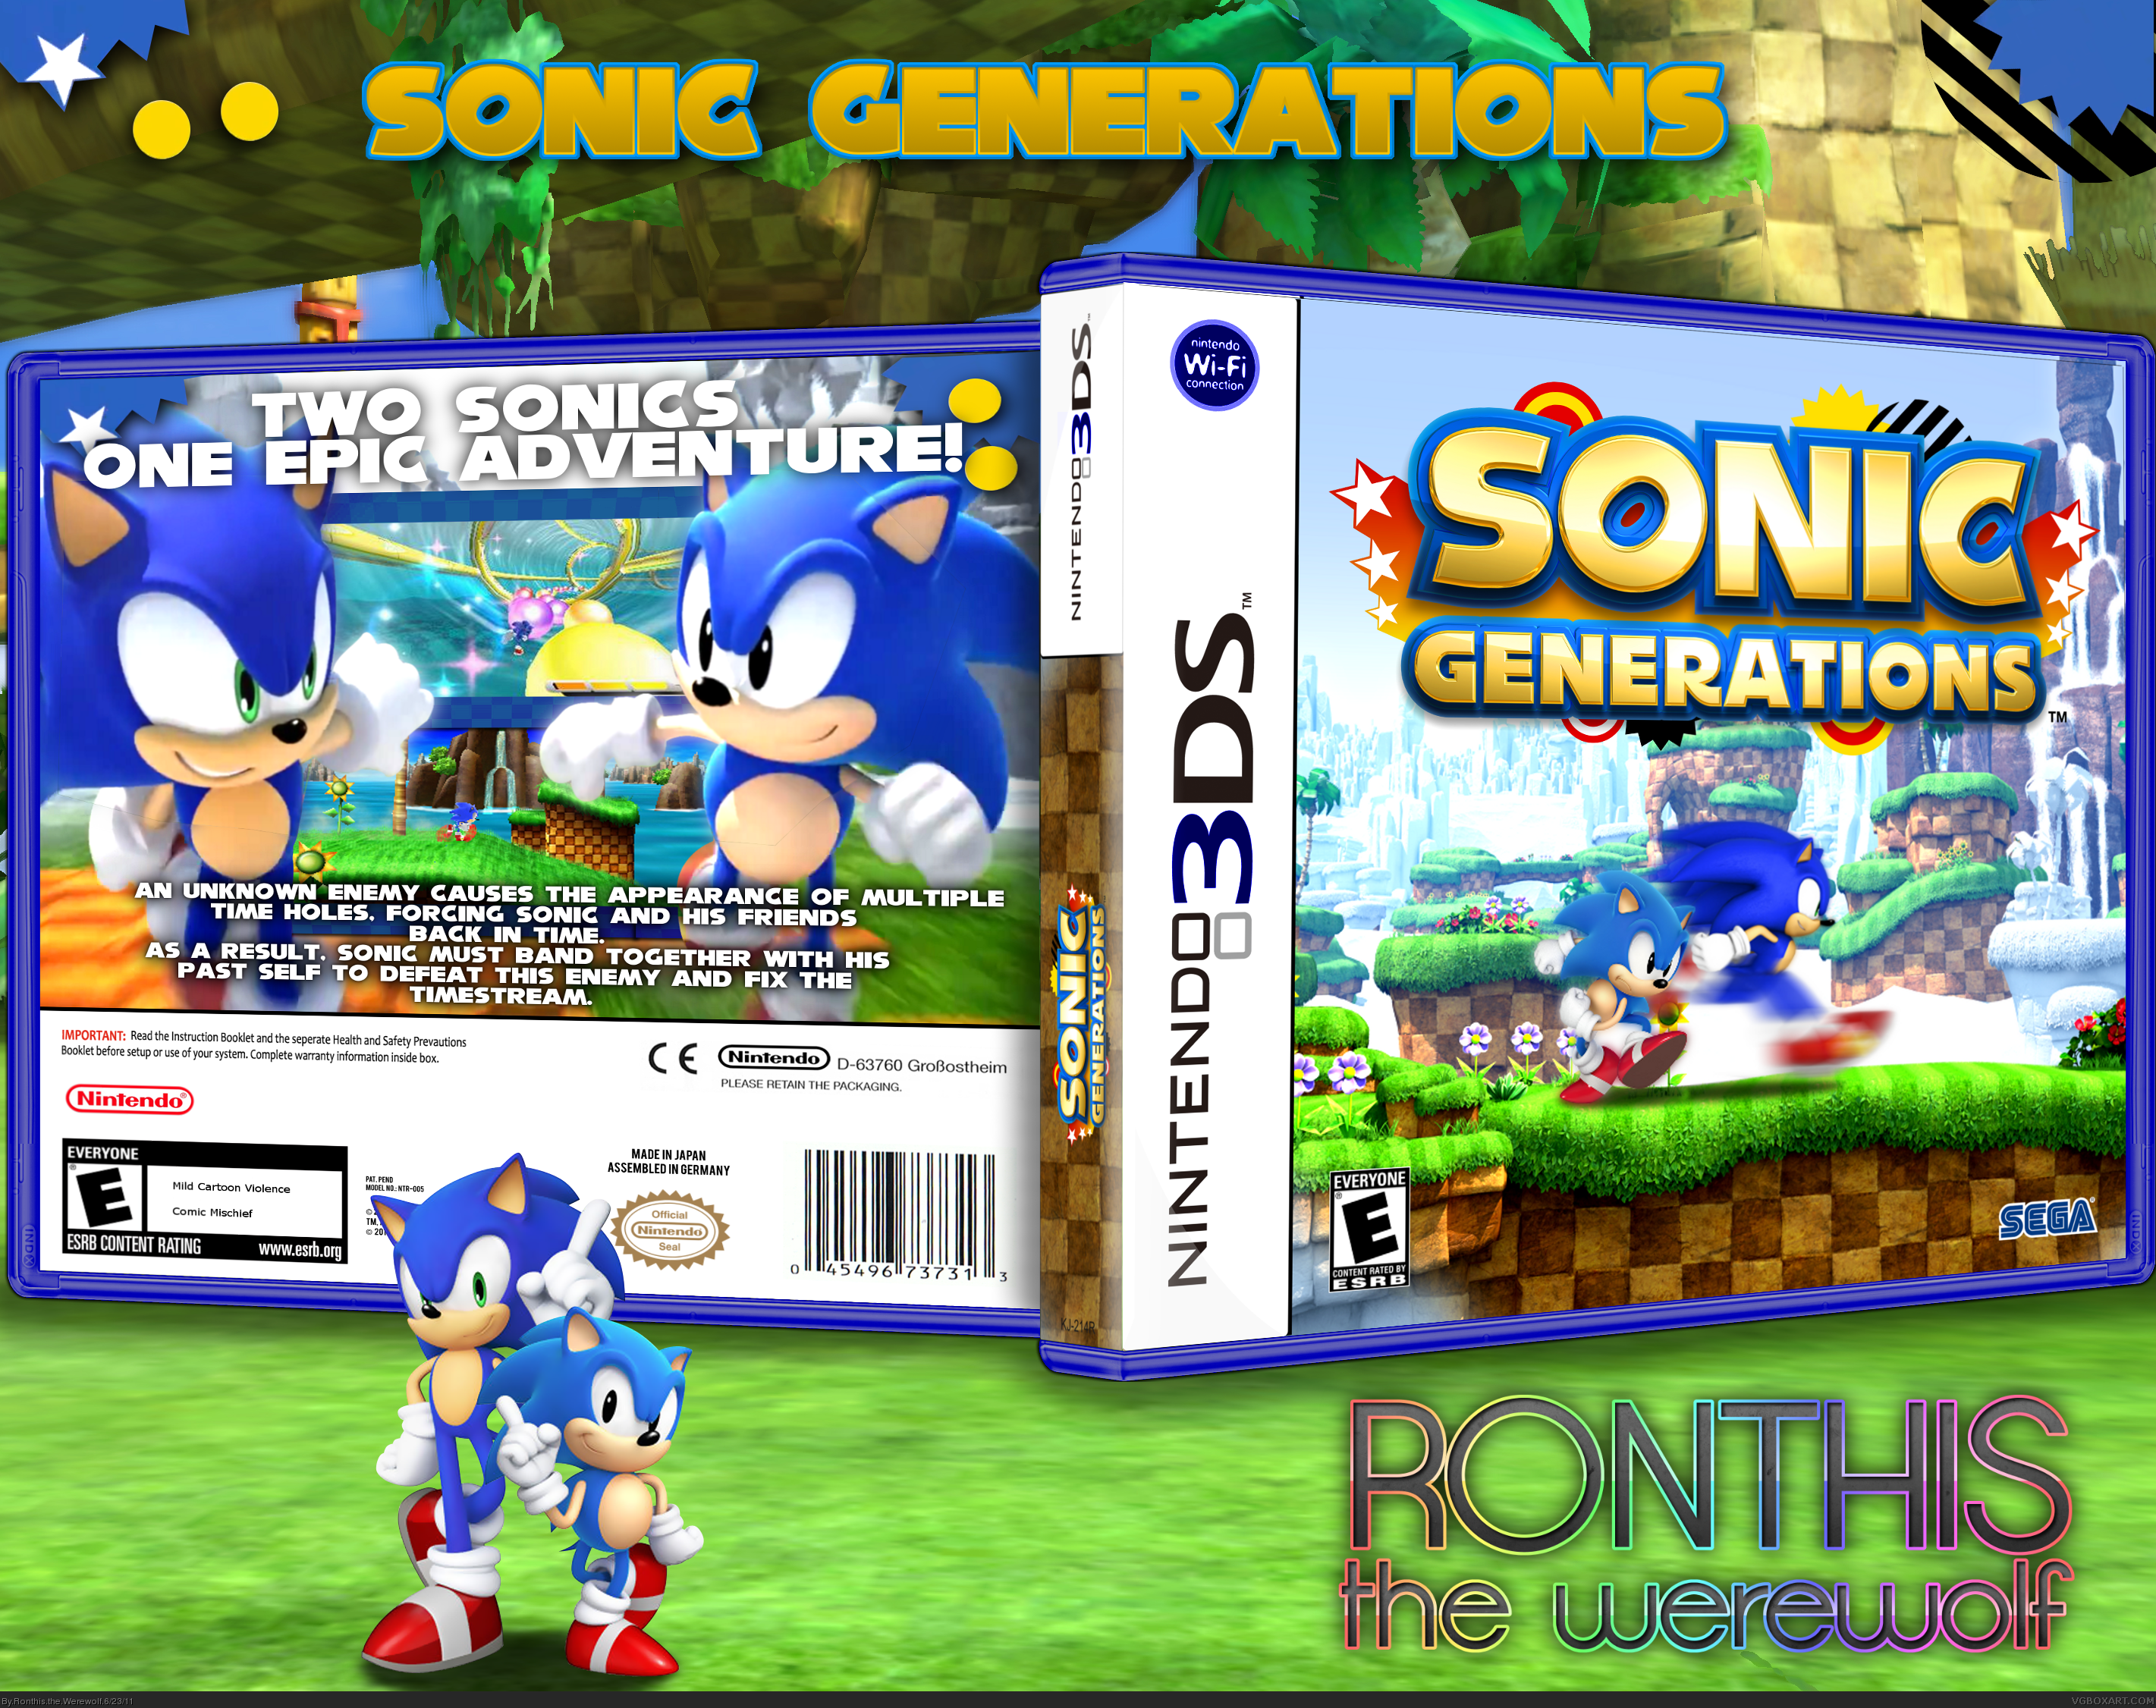 Sonic Generations Nintendo 3DS Box Art Cover by Ronthis the